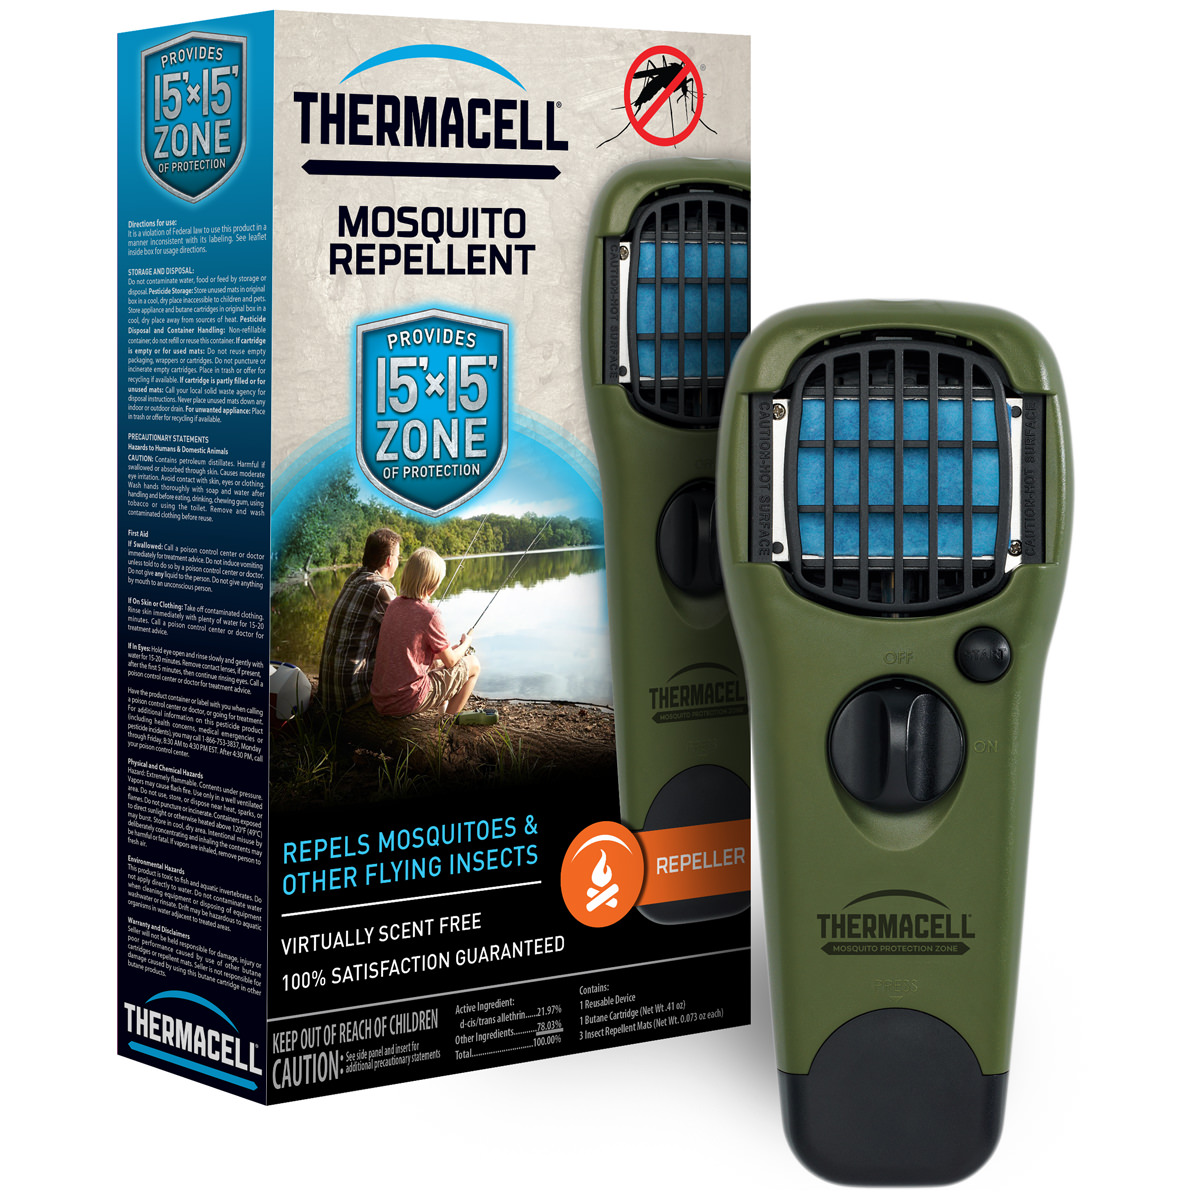 Thermacell Mosquito Repellent Portable Repeller, 12 Hour Protection